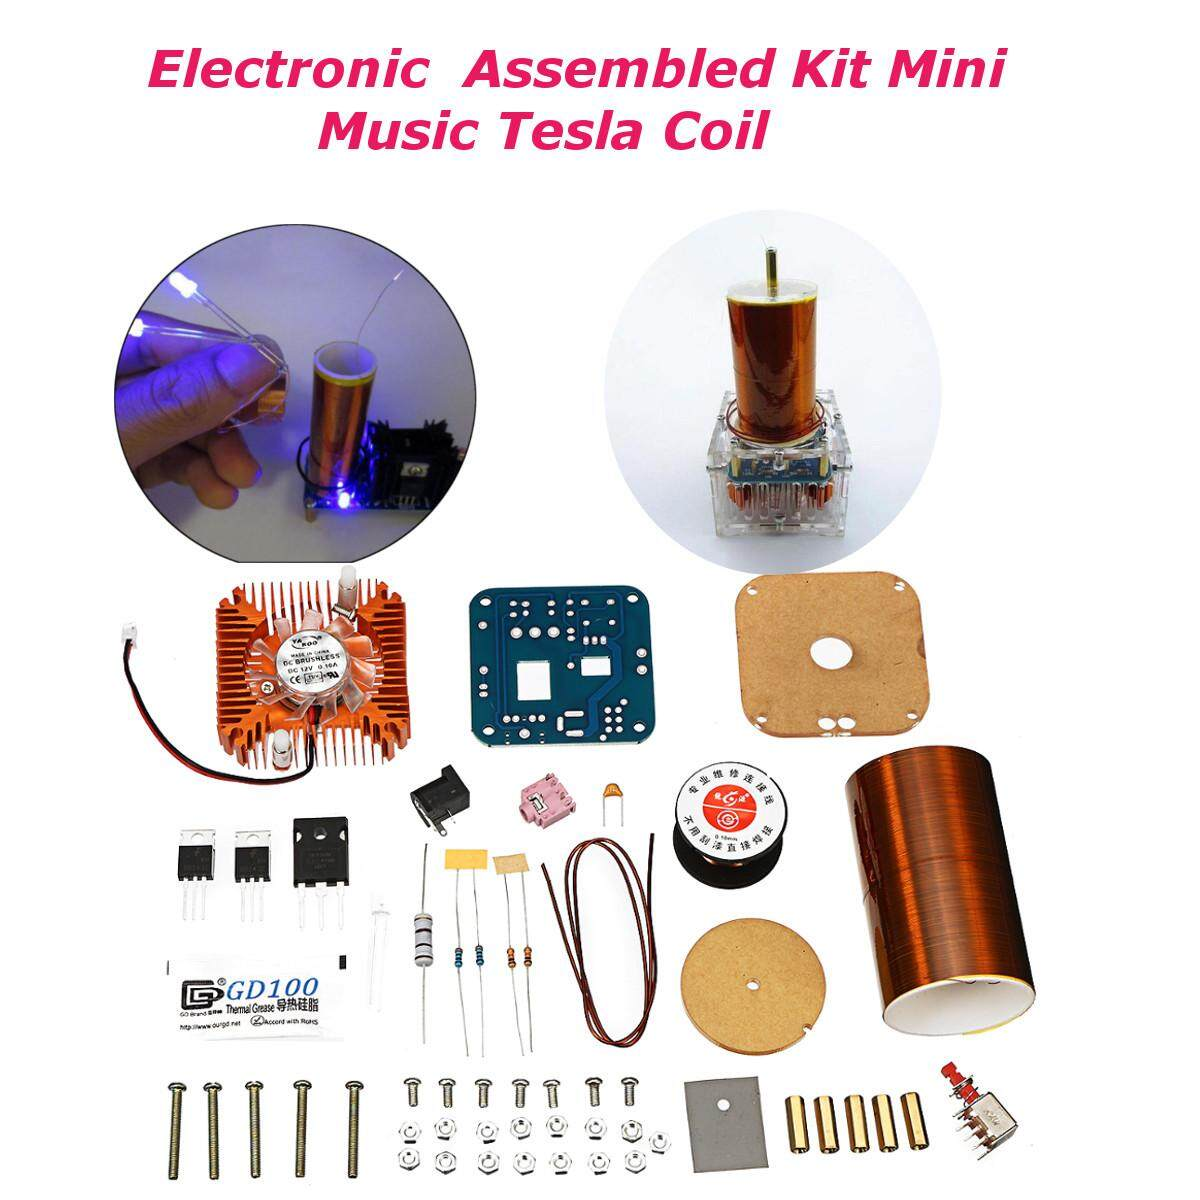 24 V Diy Elektronik Kit Rakitan Mini Bohlam Cahaya Led Speaker Plasma Tesla Arc Generator By Channy.